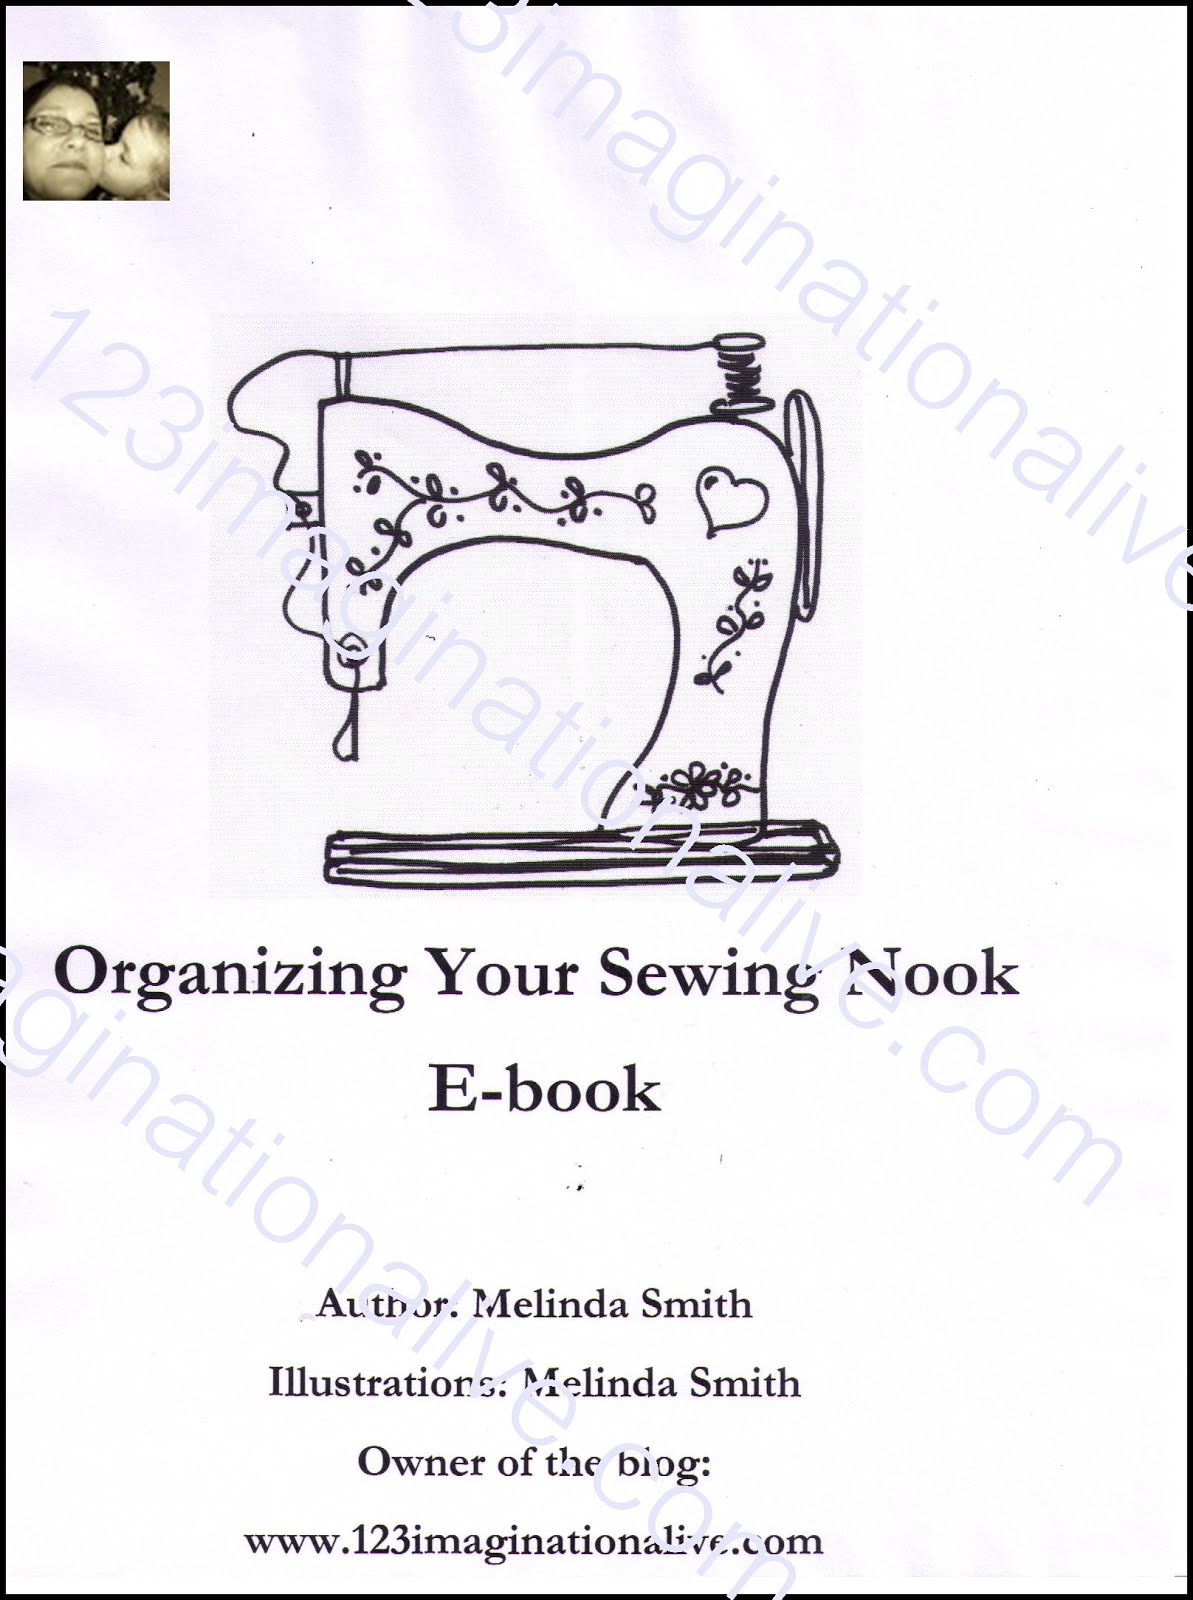 E-book Organizing Your Sewing Nook